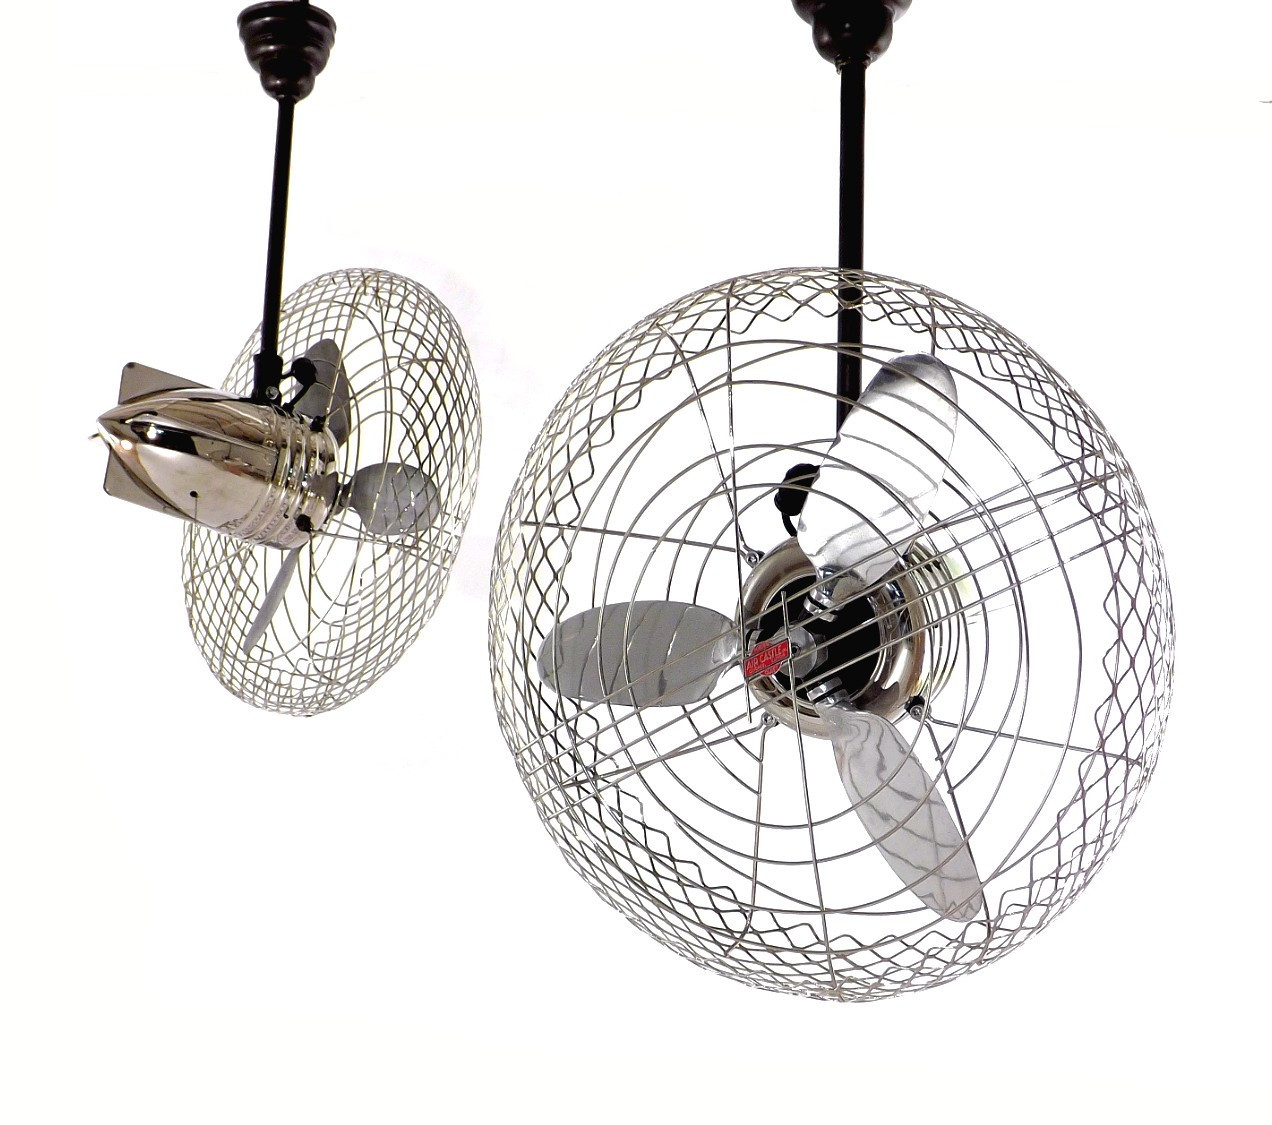 Incredible Pair Of 1940's Industrial Chrome Air Castle Airplane Design Circulator Fans Restored